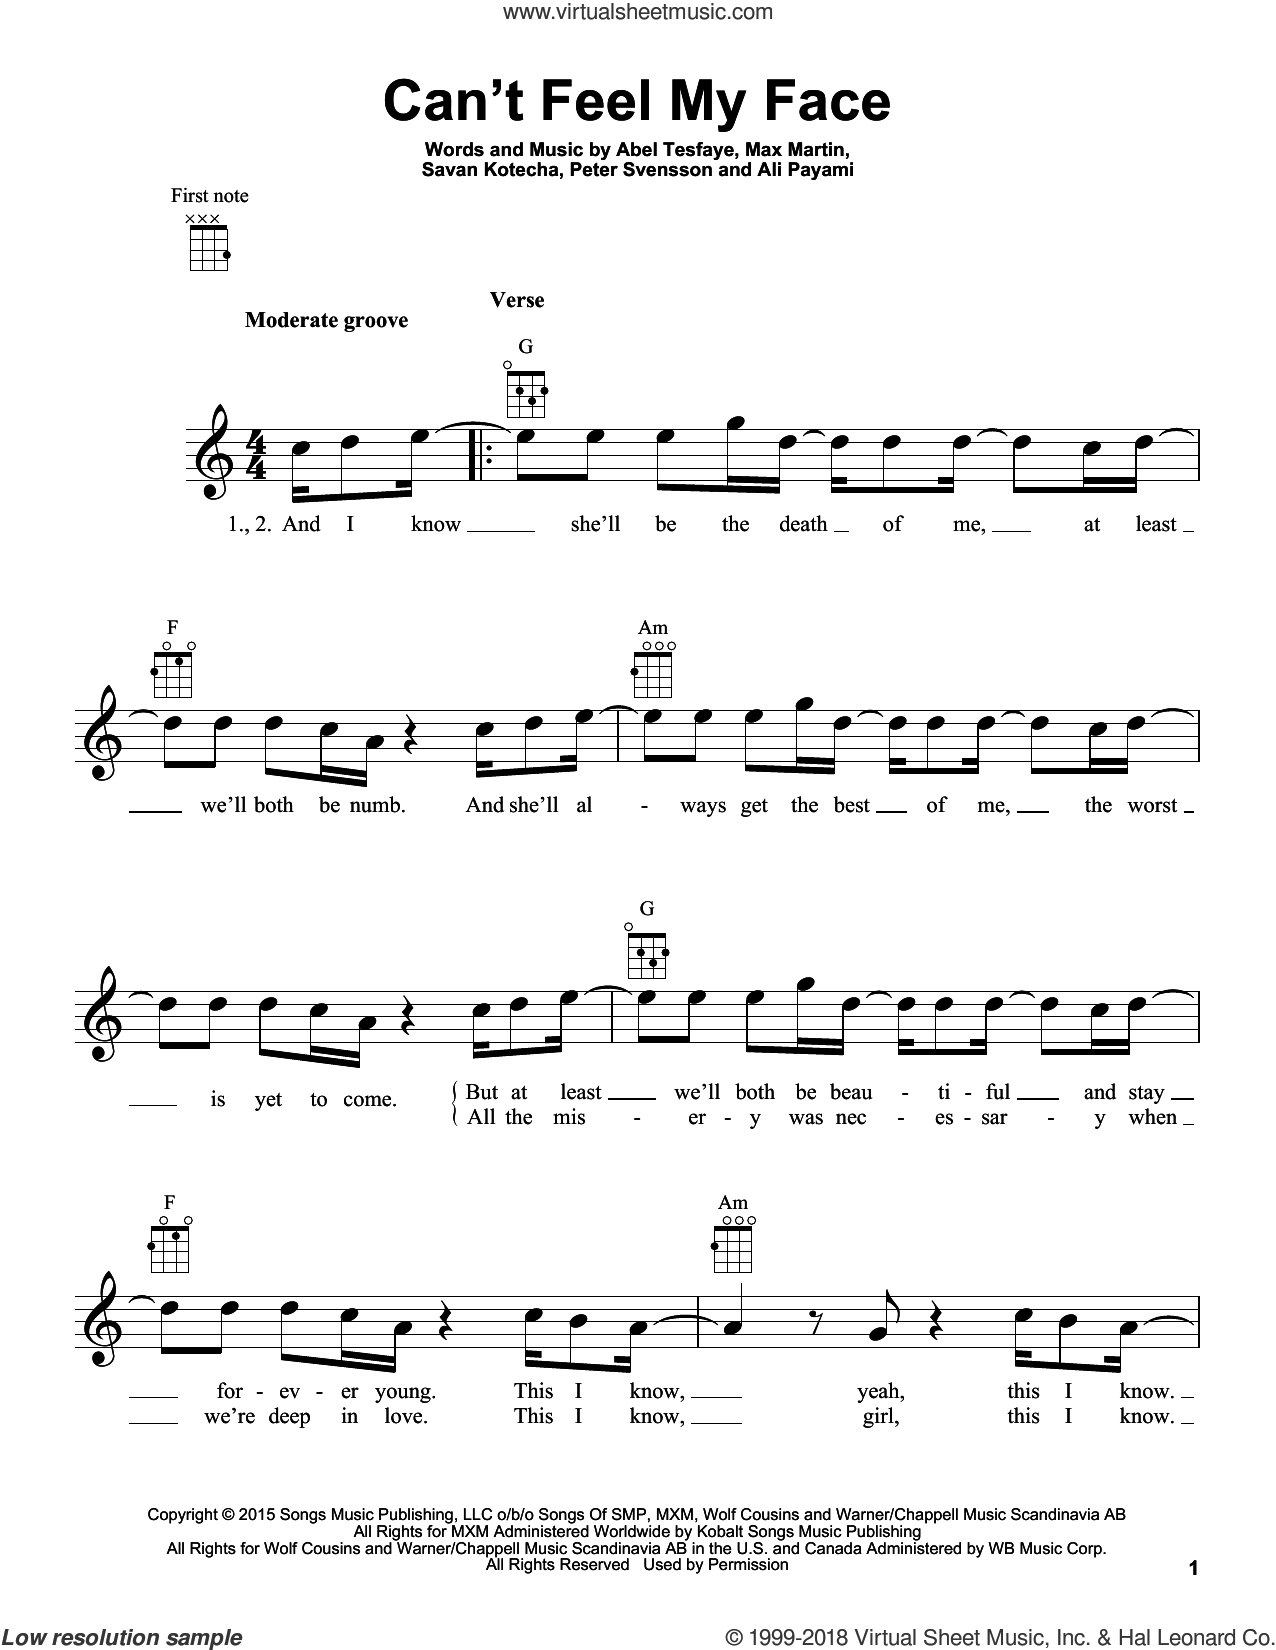 Can't Feel My Face sheet music for ukulele by The Weeknd, Ali Payami, Max Martin, Peter Svensson and Savan Kotecha. Score Image Preview.